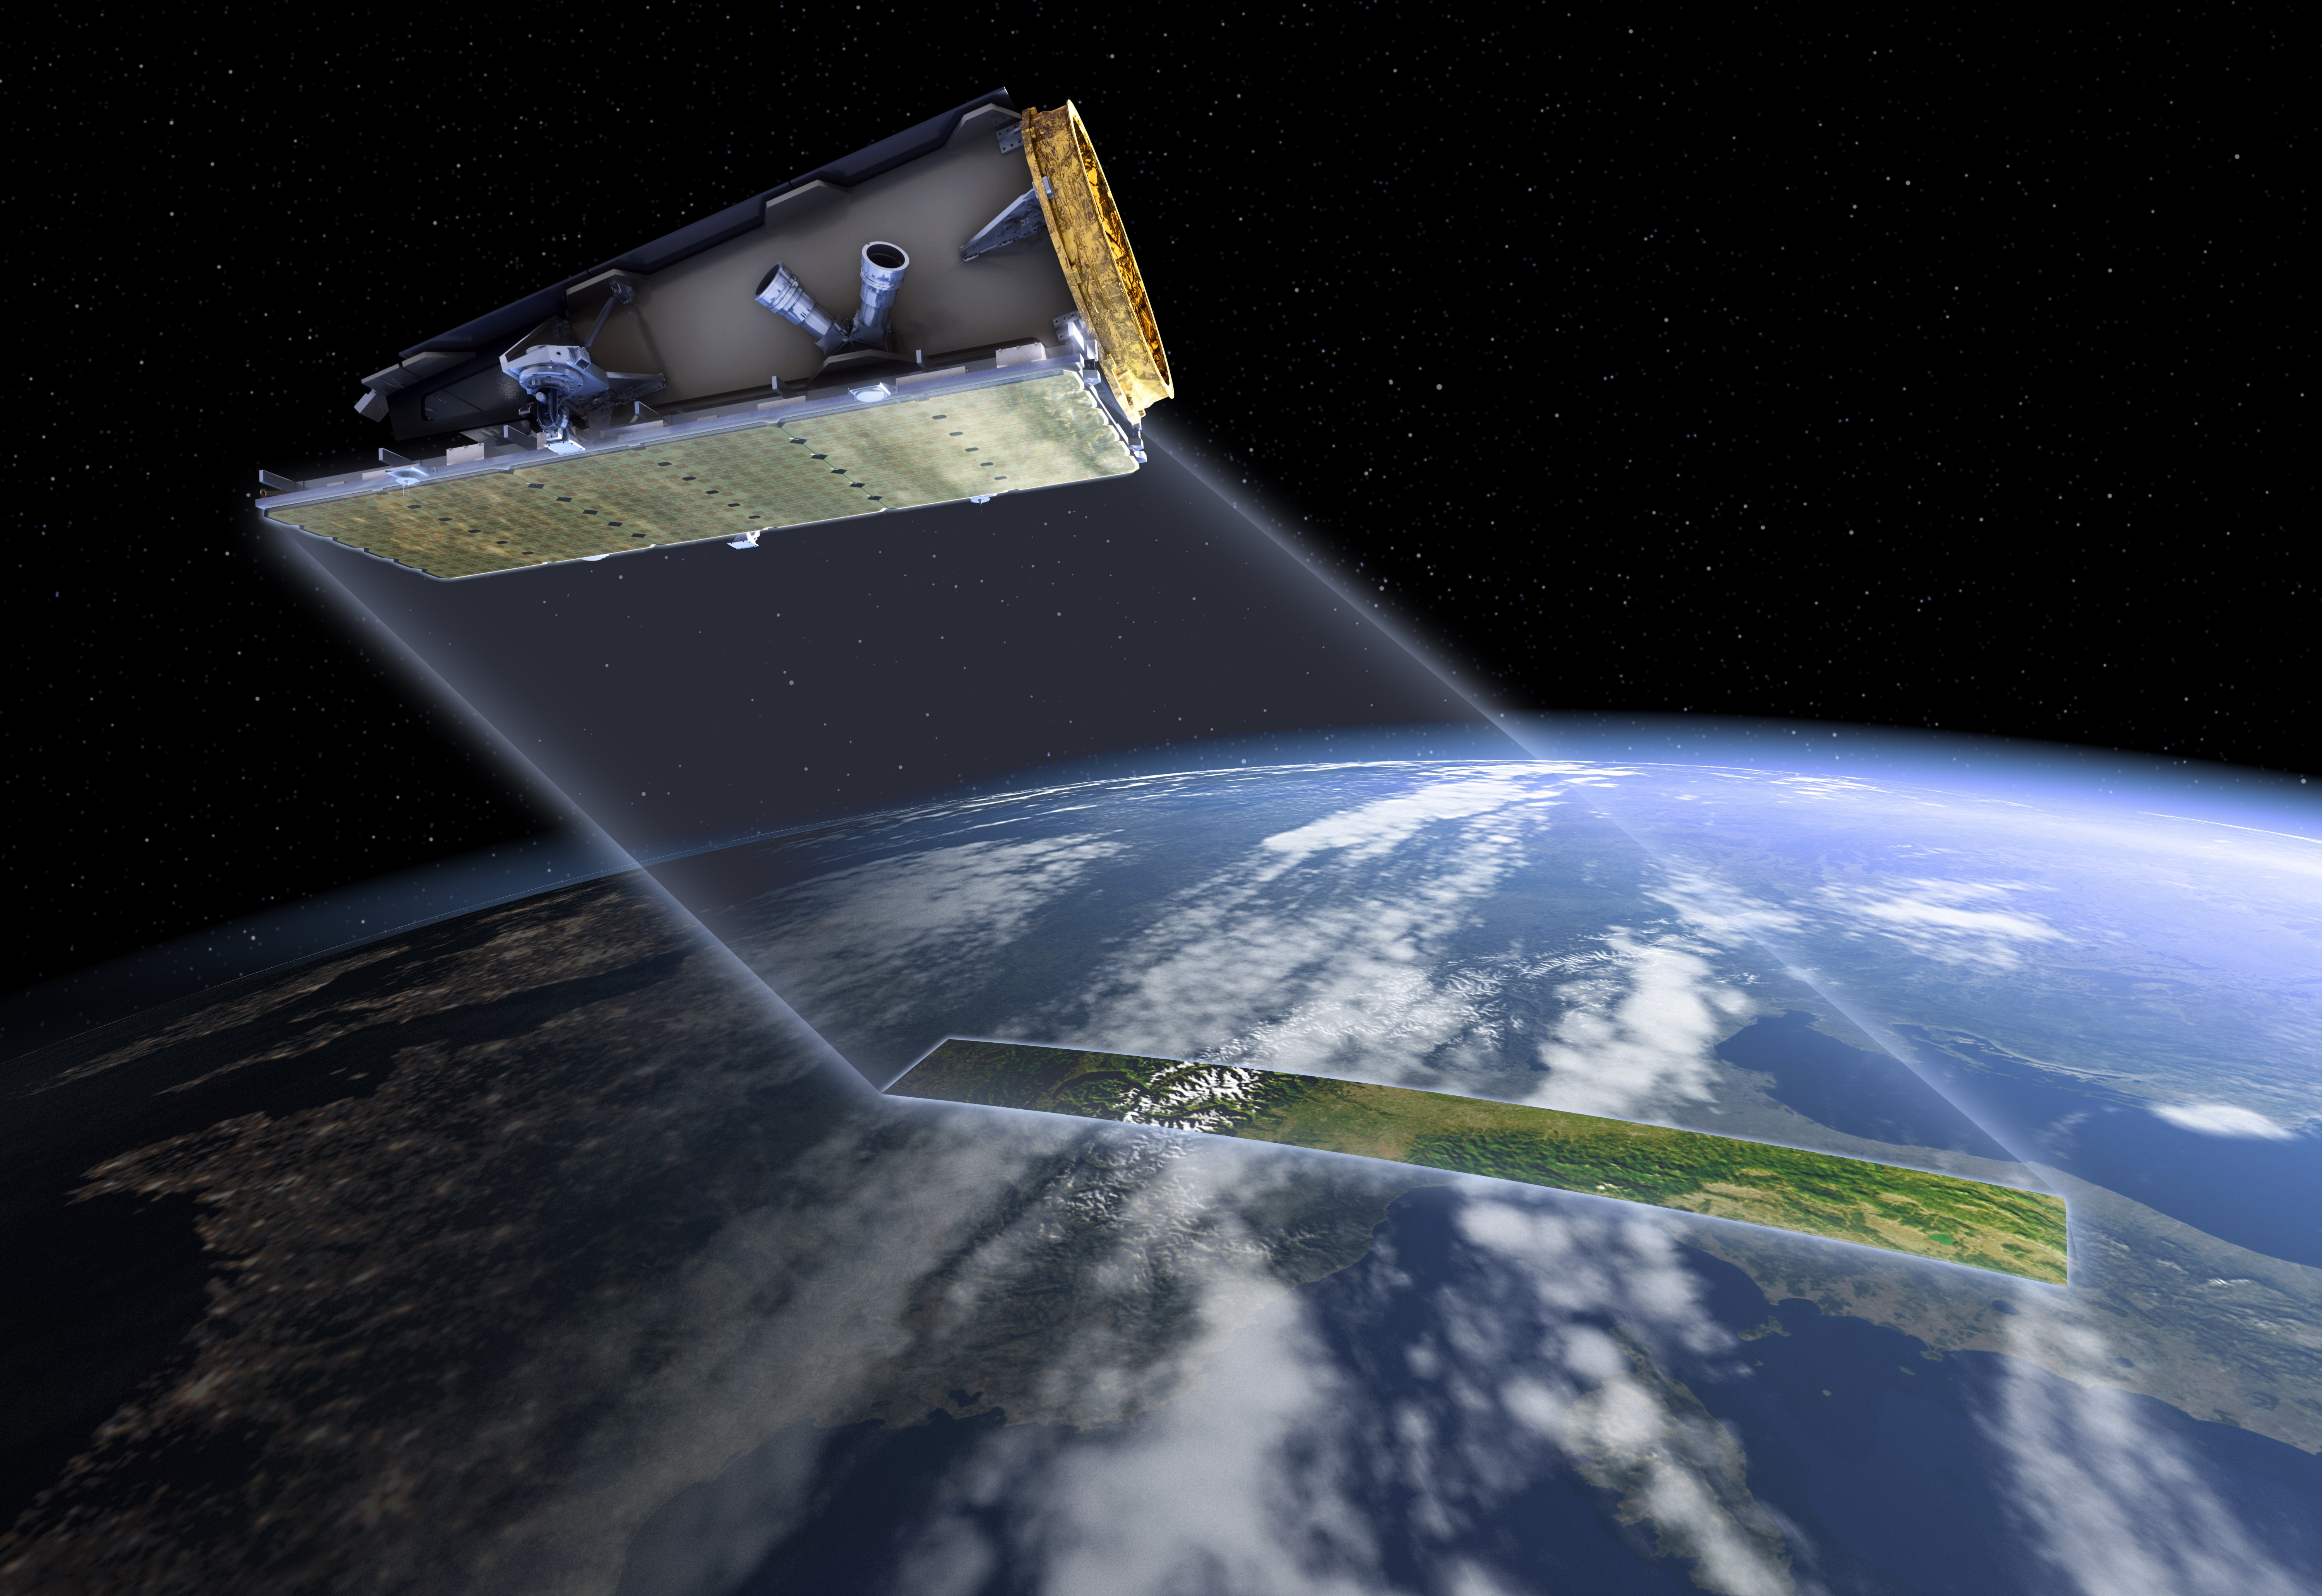 NovaSAR-1 satellite in orbit, with beams sweeping across Earth globe below. The beam which forms a strip on the Earth is looking through the atmosphere like a cross section.